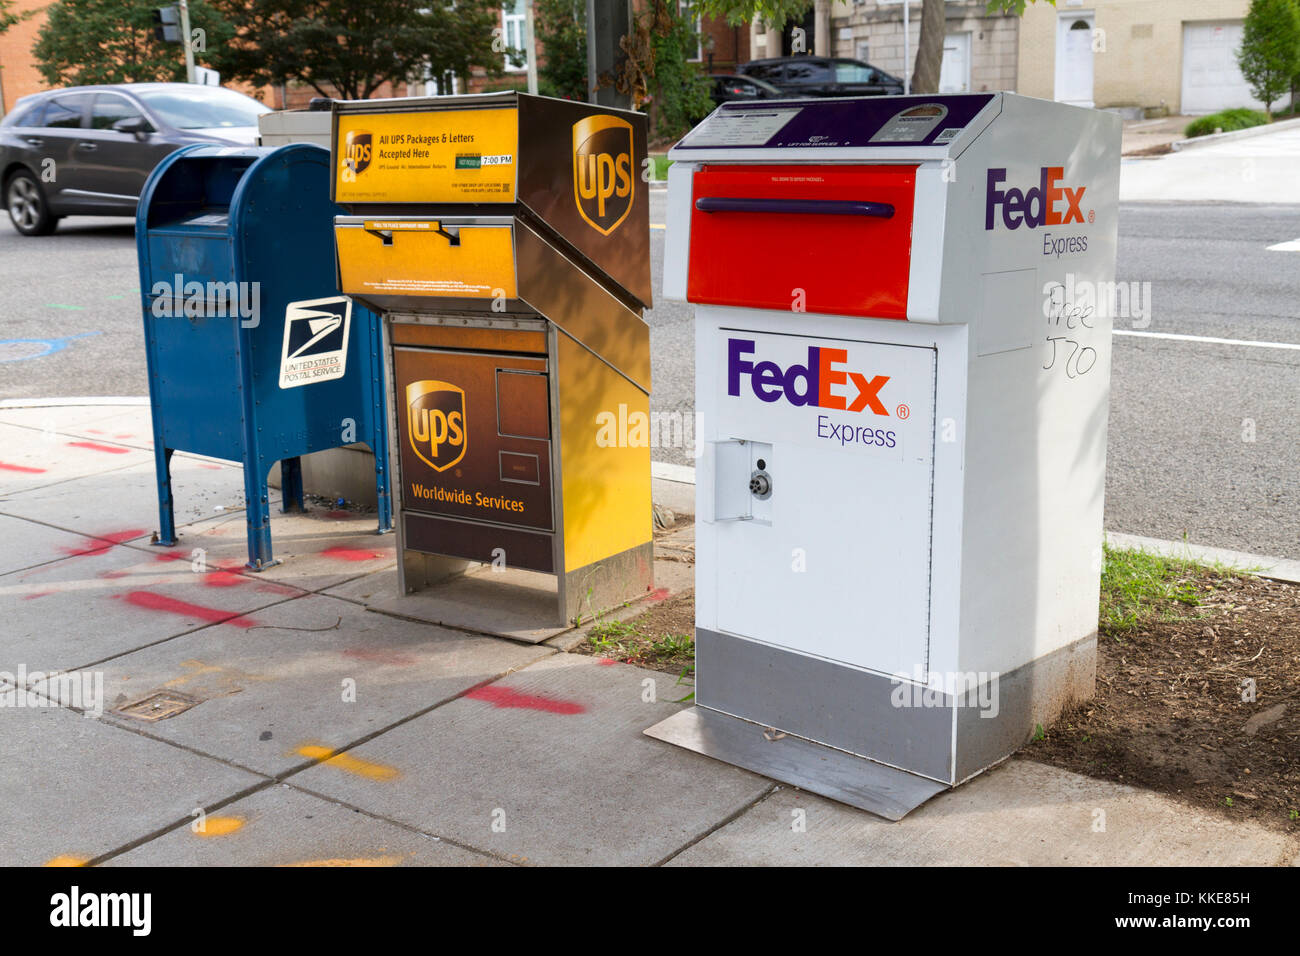 UPS vs. FedEx: Comparing Business Models and Strategies